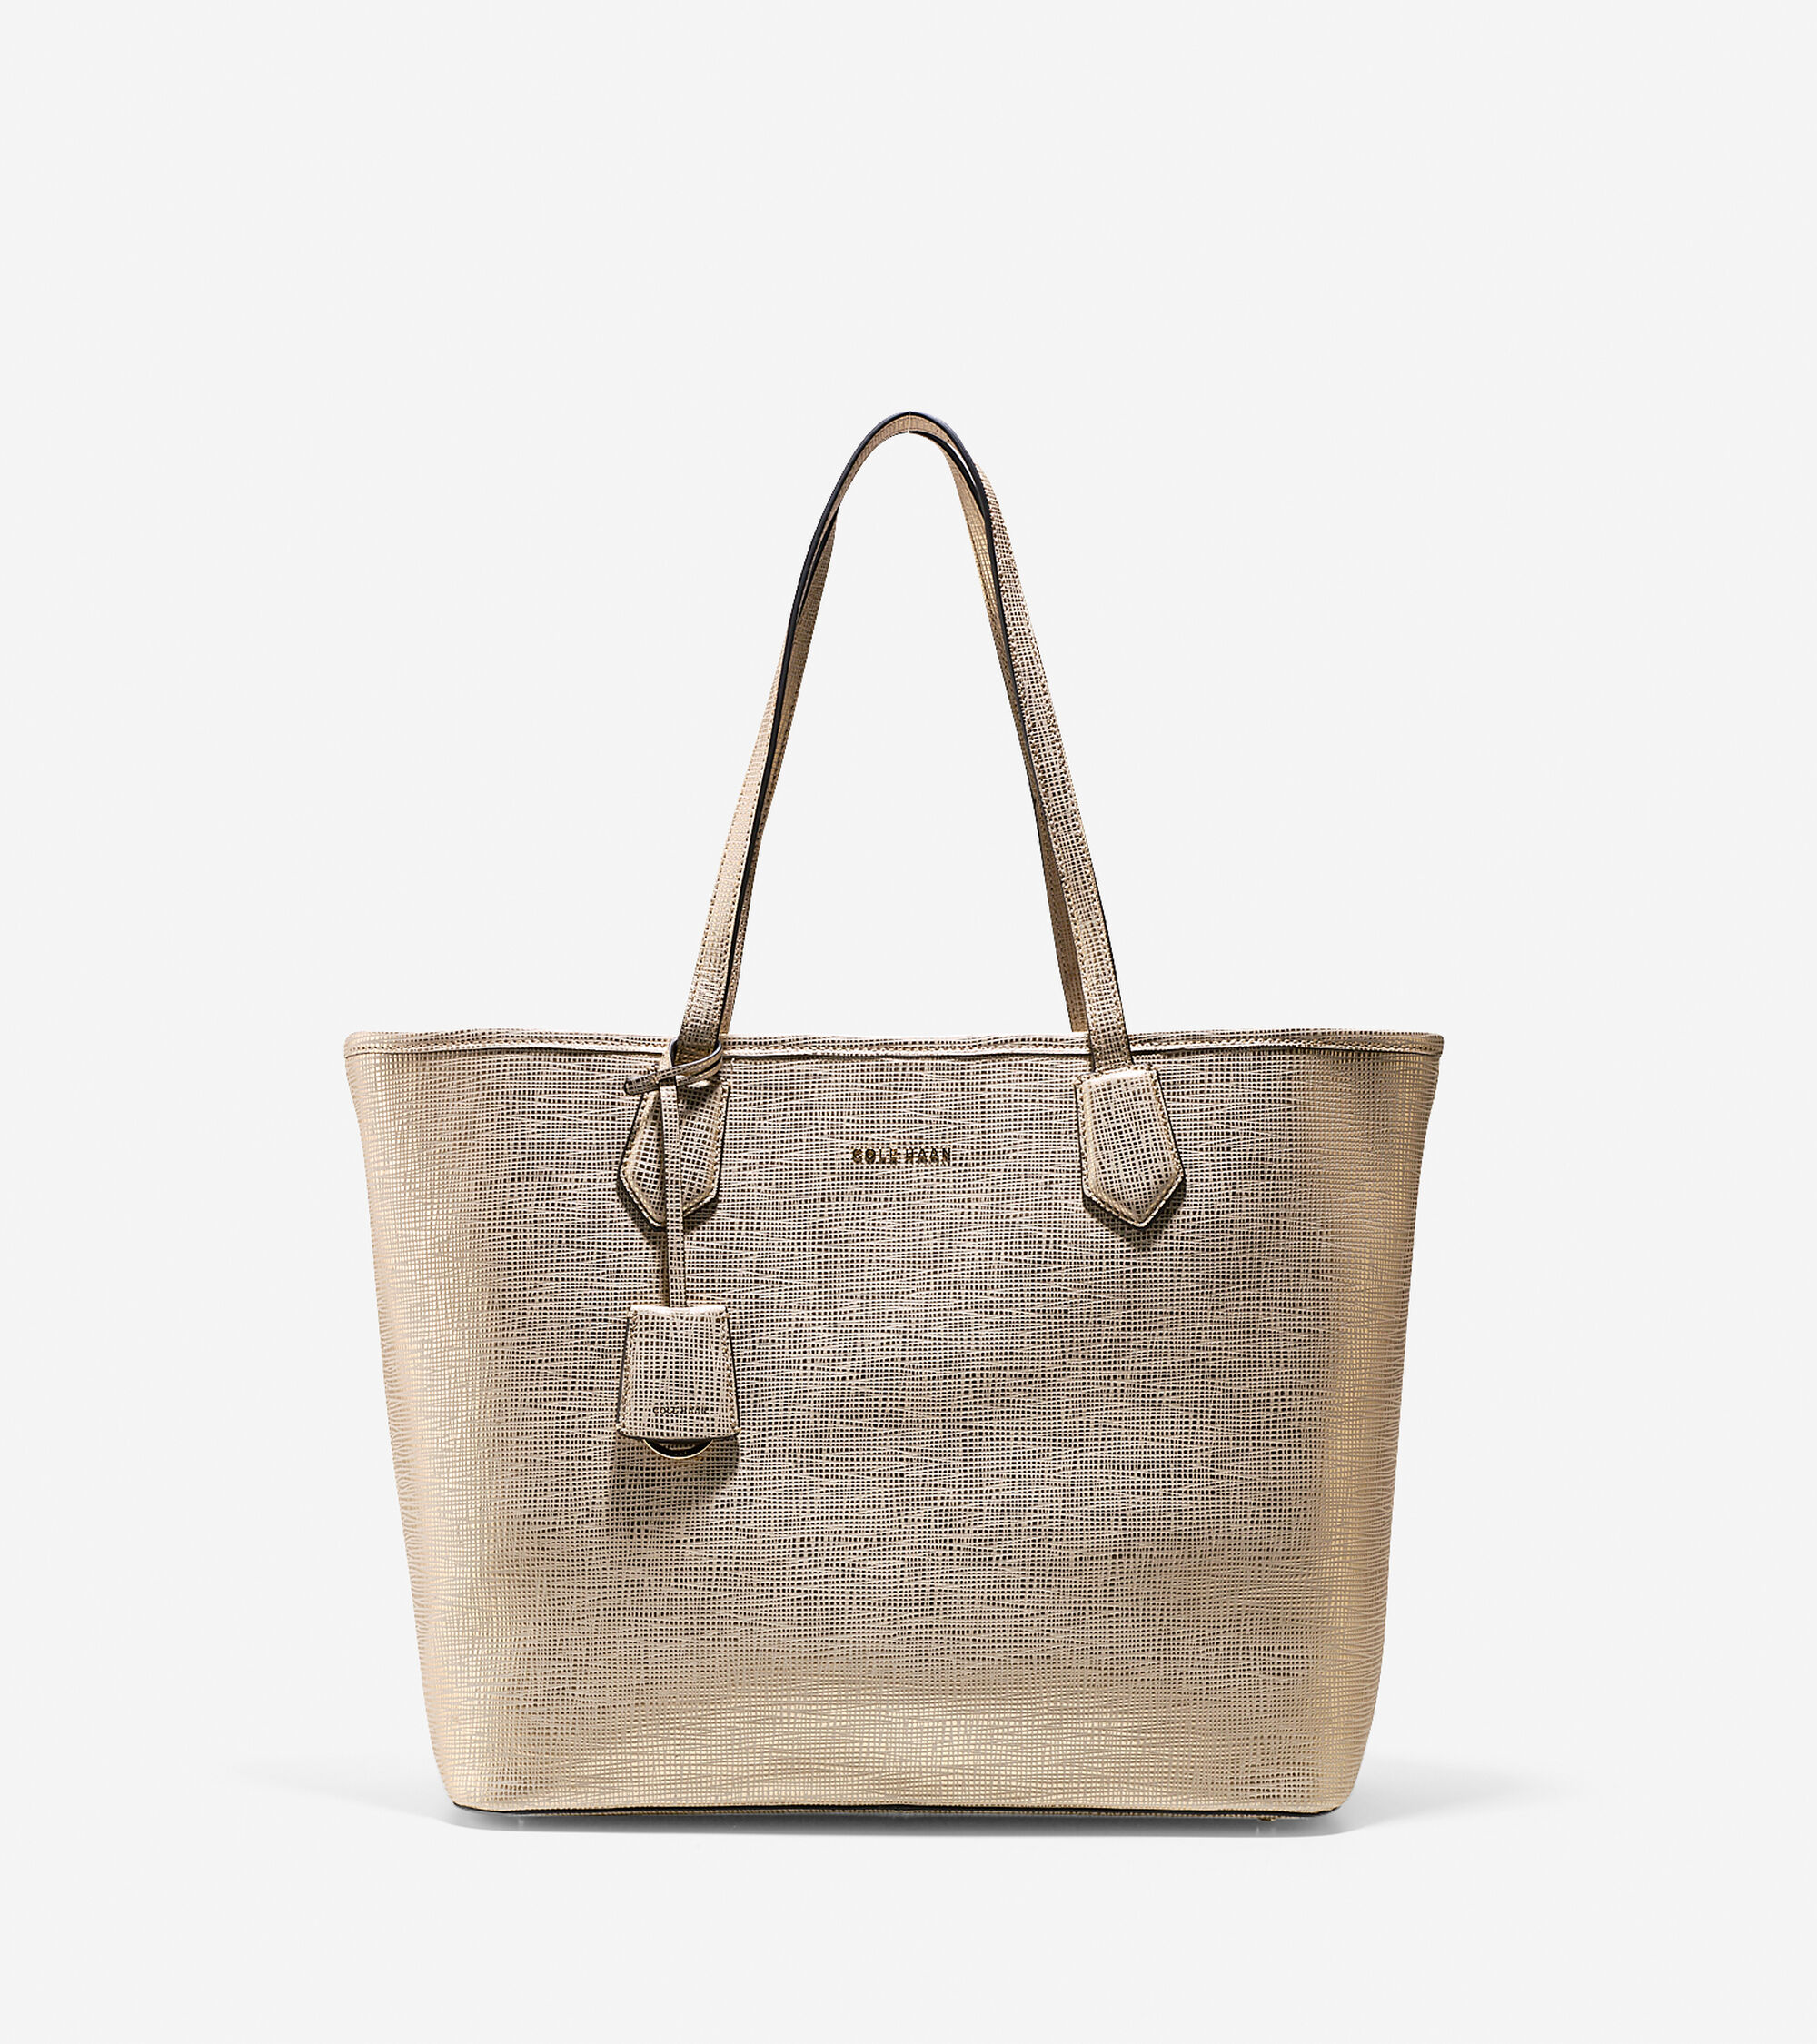 59943fb4ede0 Women s Abbot Tote in Gold